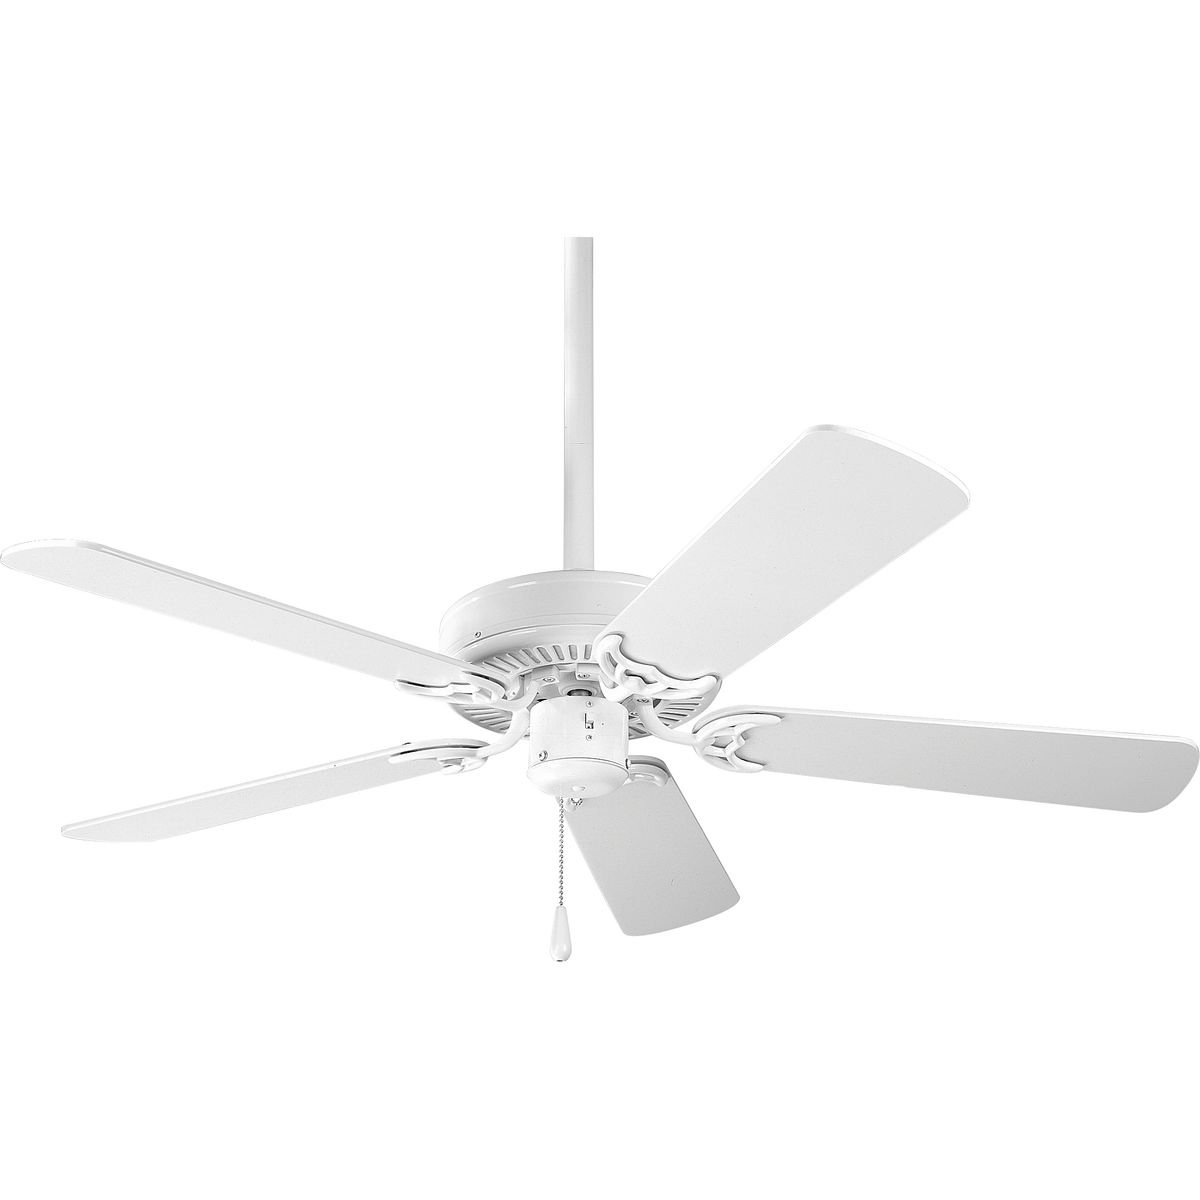 Progress Lighting P2500-30 Traditional 42 Ceiling Fan from AirPro Builder Collection in White Finish, Inch Diameter x 12-Inch Height